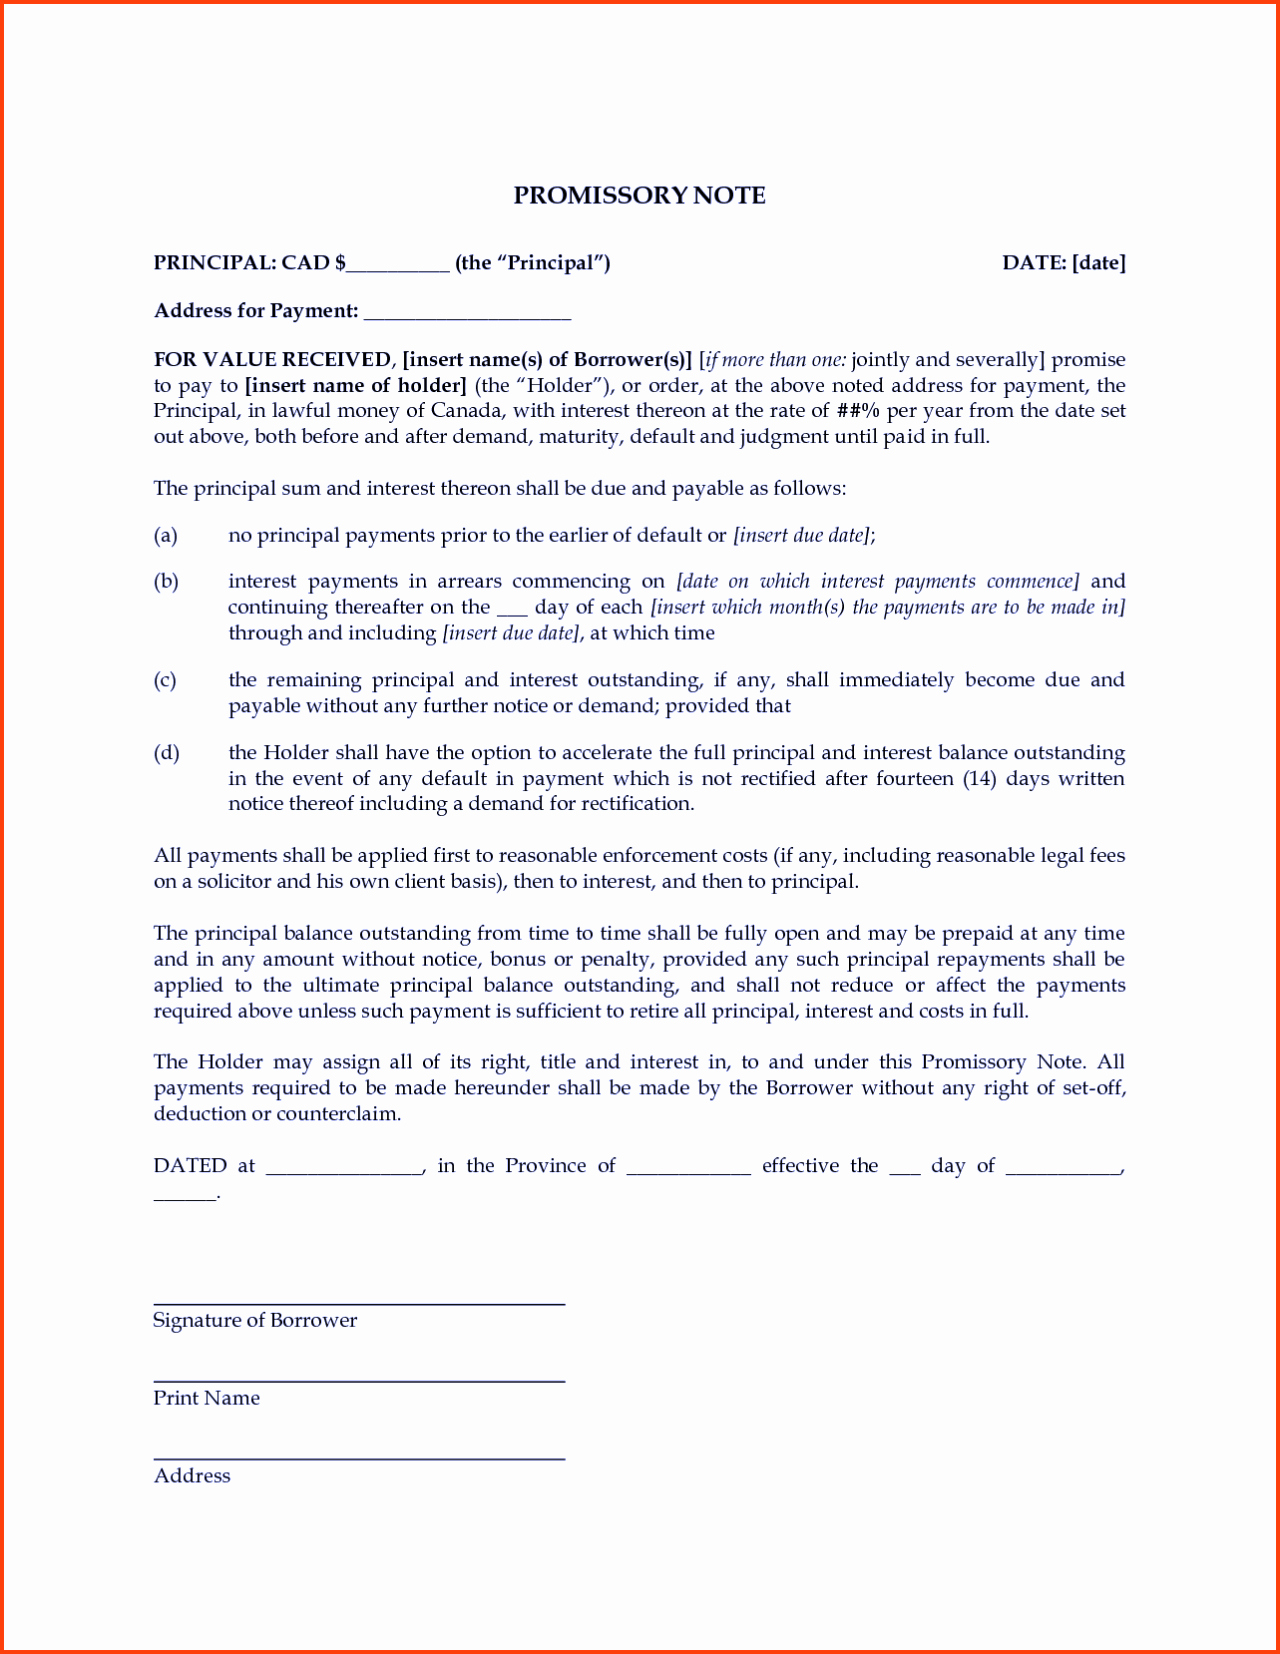 Promissory Note Template Free Inspirational Free Promissory Note Template Word Pdf